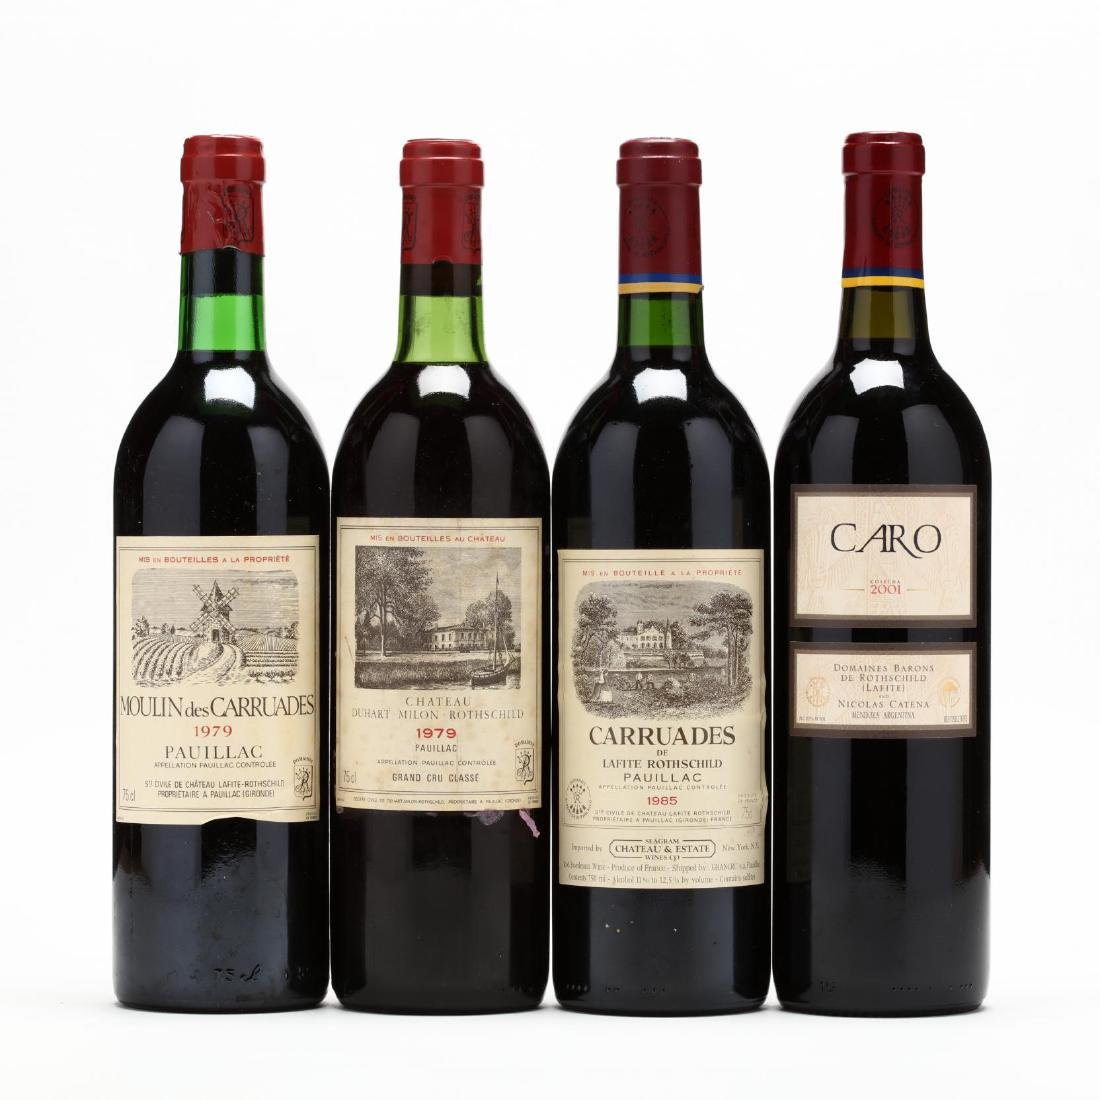 Wine by Domaines Barons de Rothschild (Lafite)